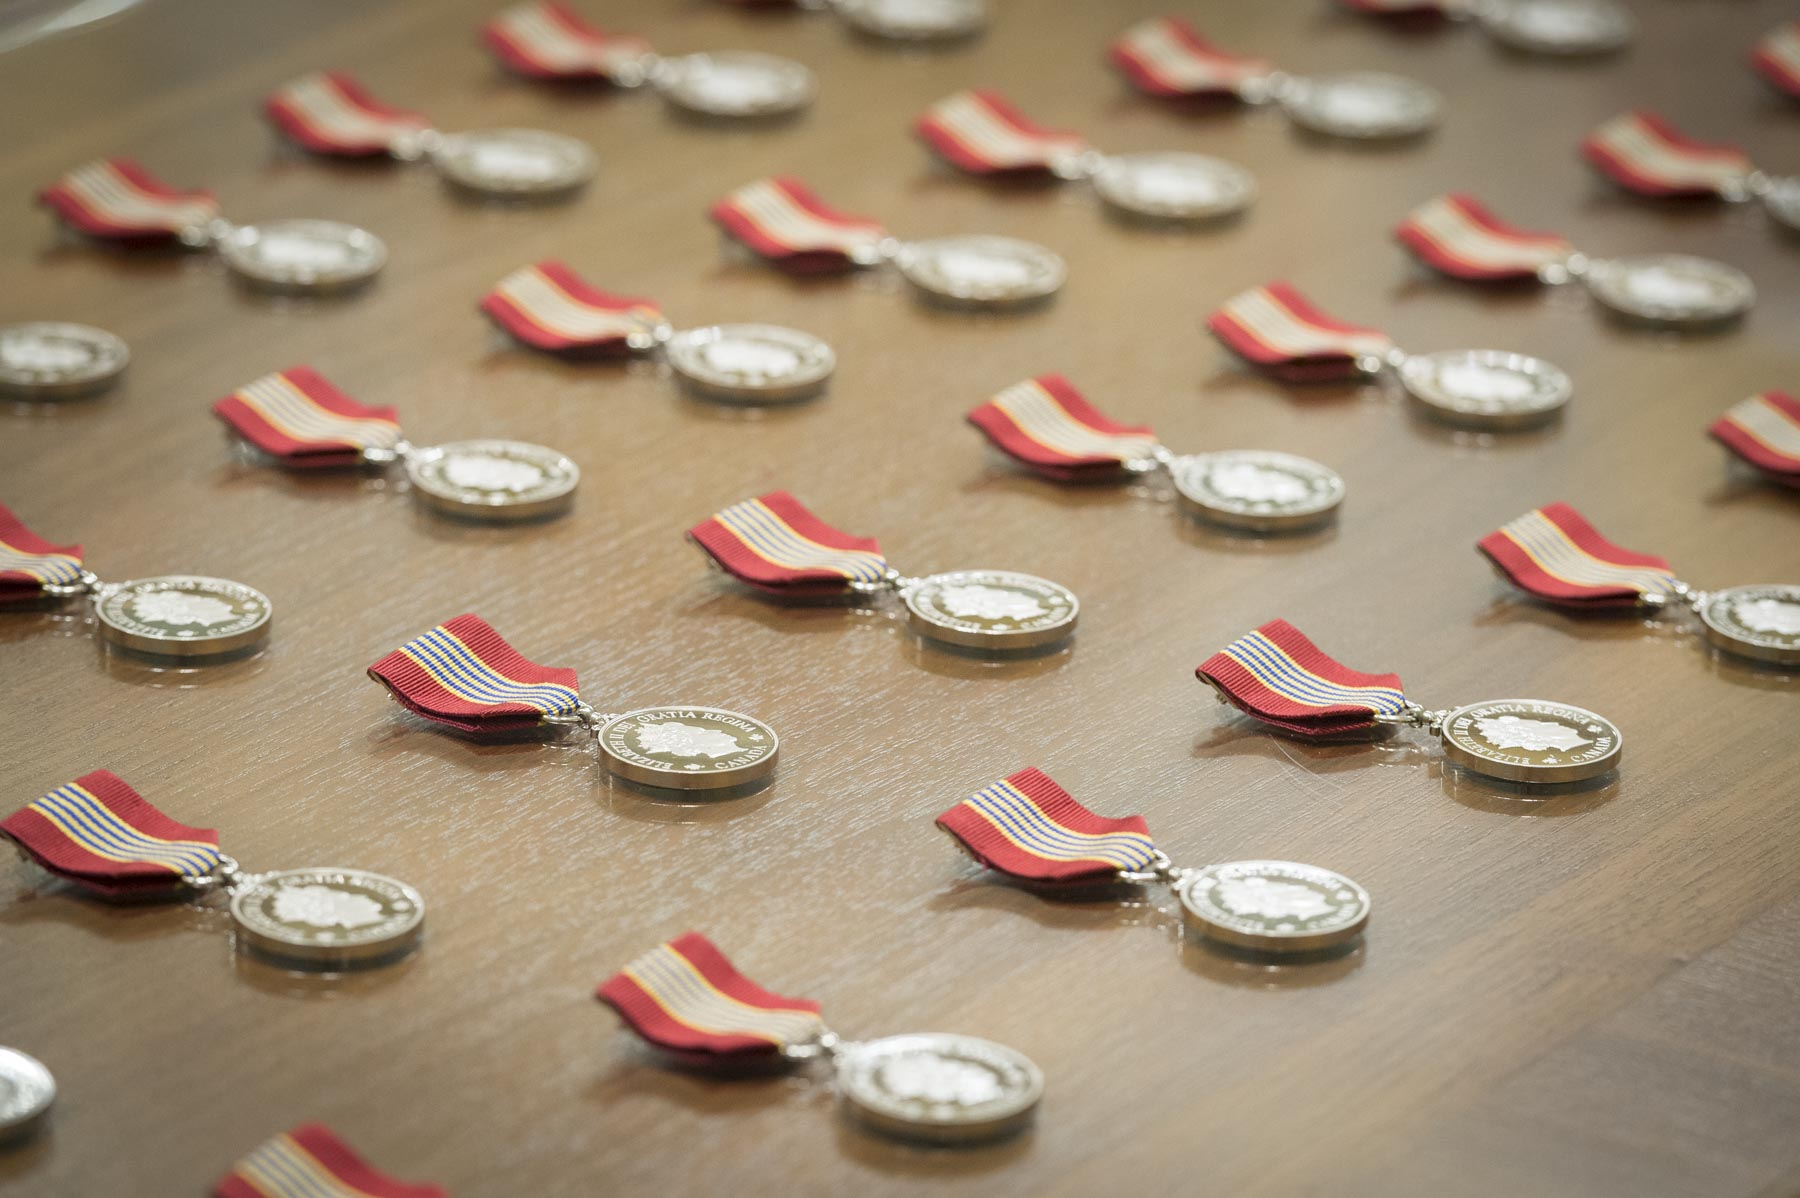 The Medal for Volunteers recognizes the exceptional volunteer achievements of Canadians from across the country in a wide range of fields.